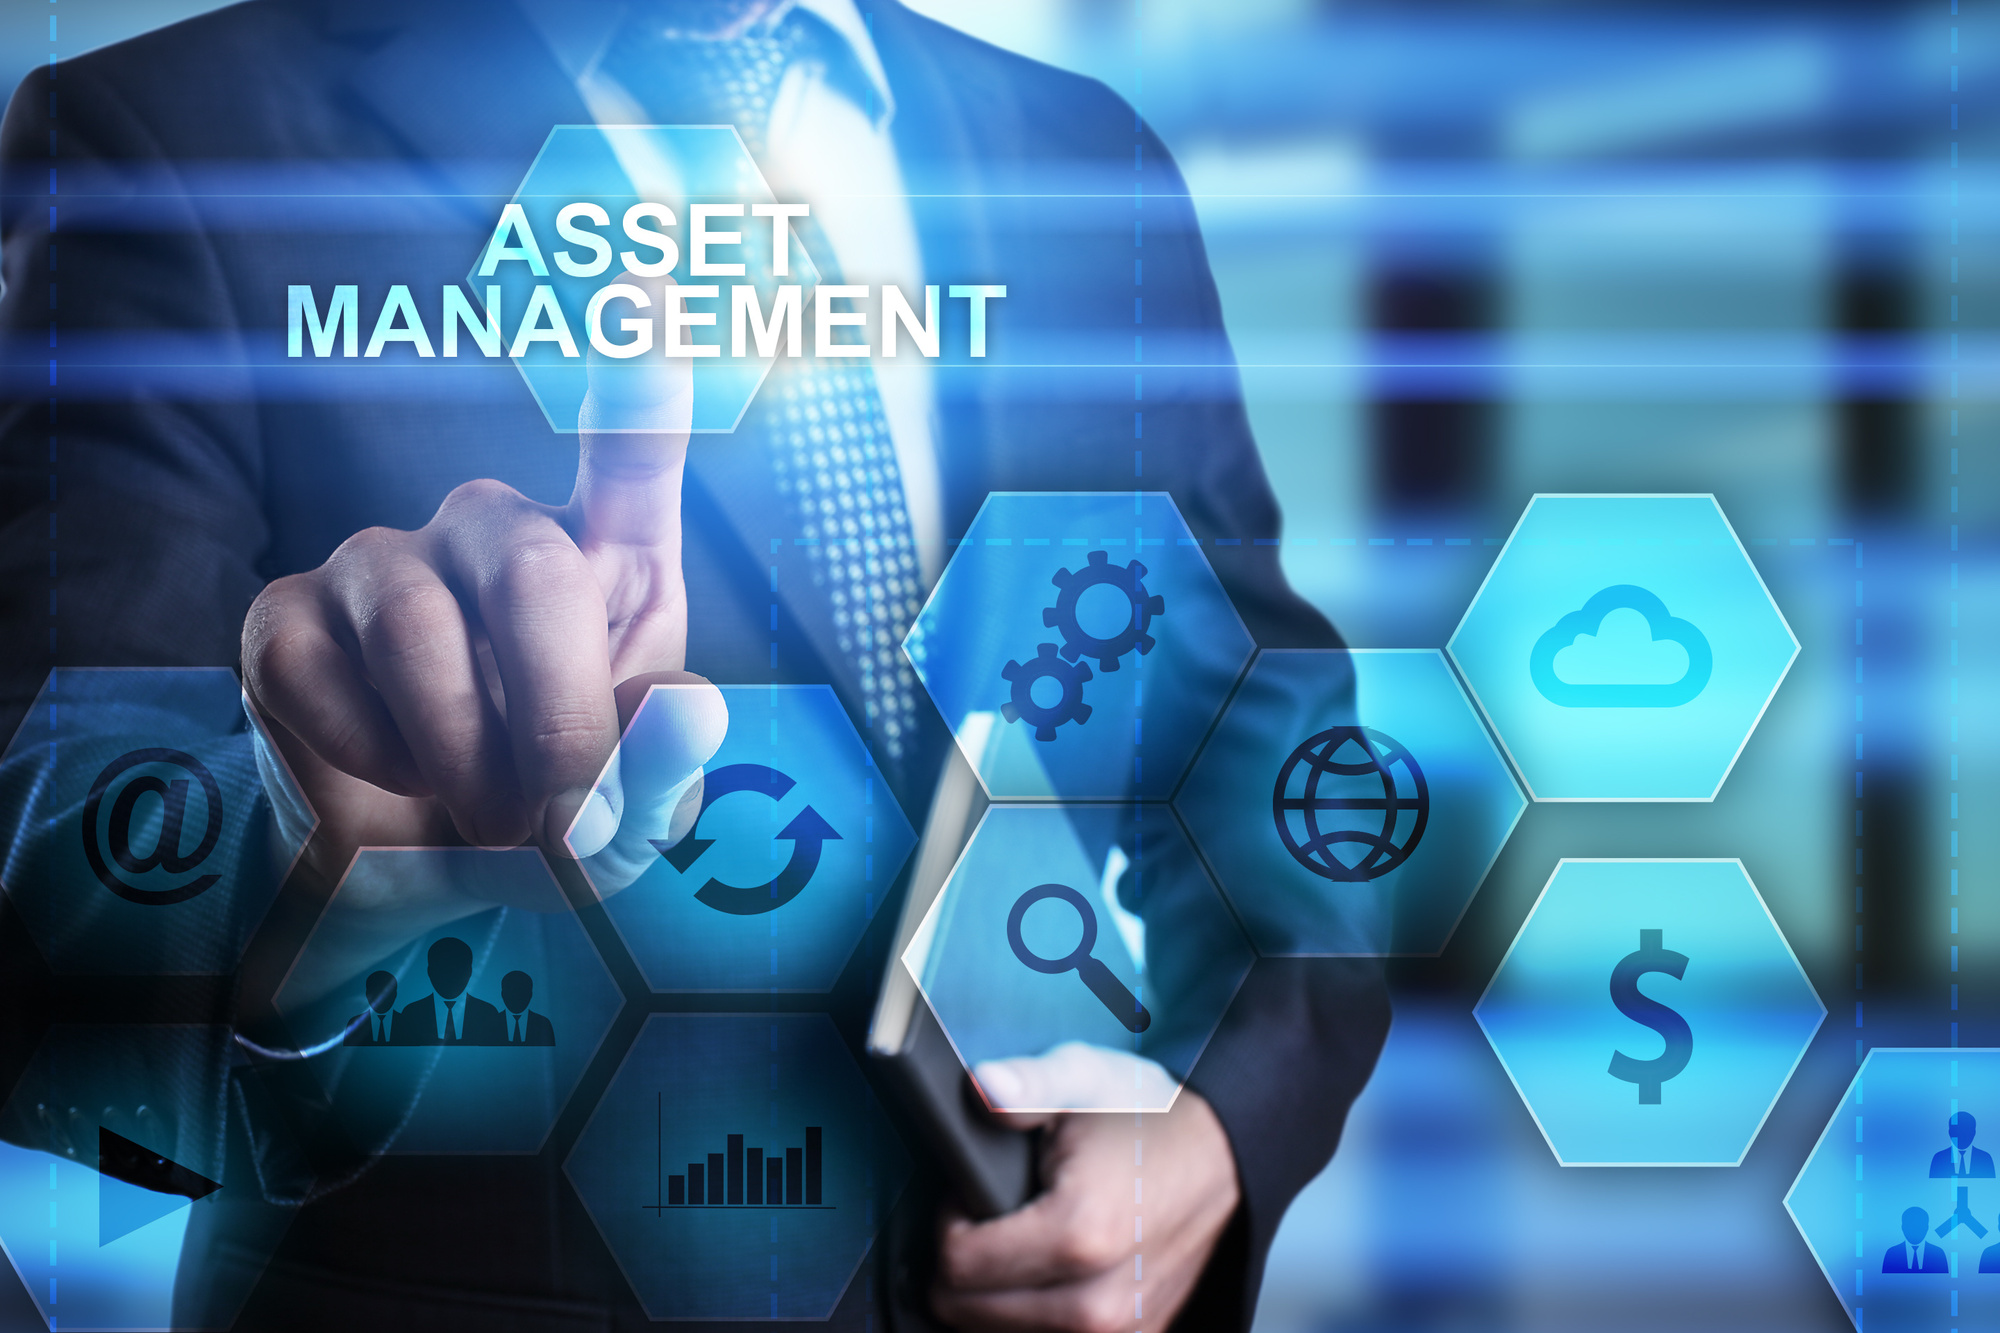 7 Tips for Choosing the Best Offshore Asset Management Company